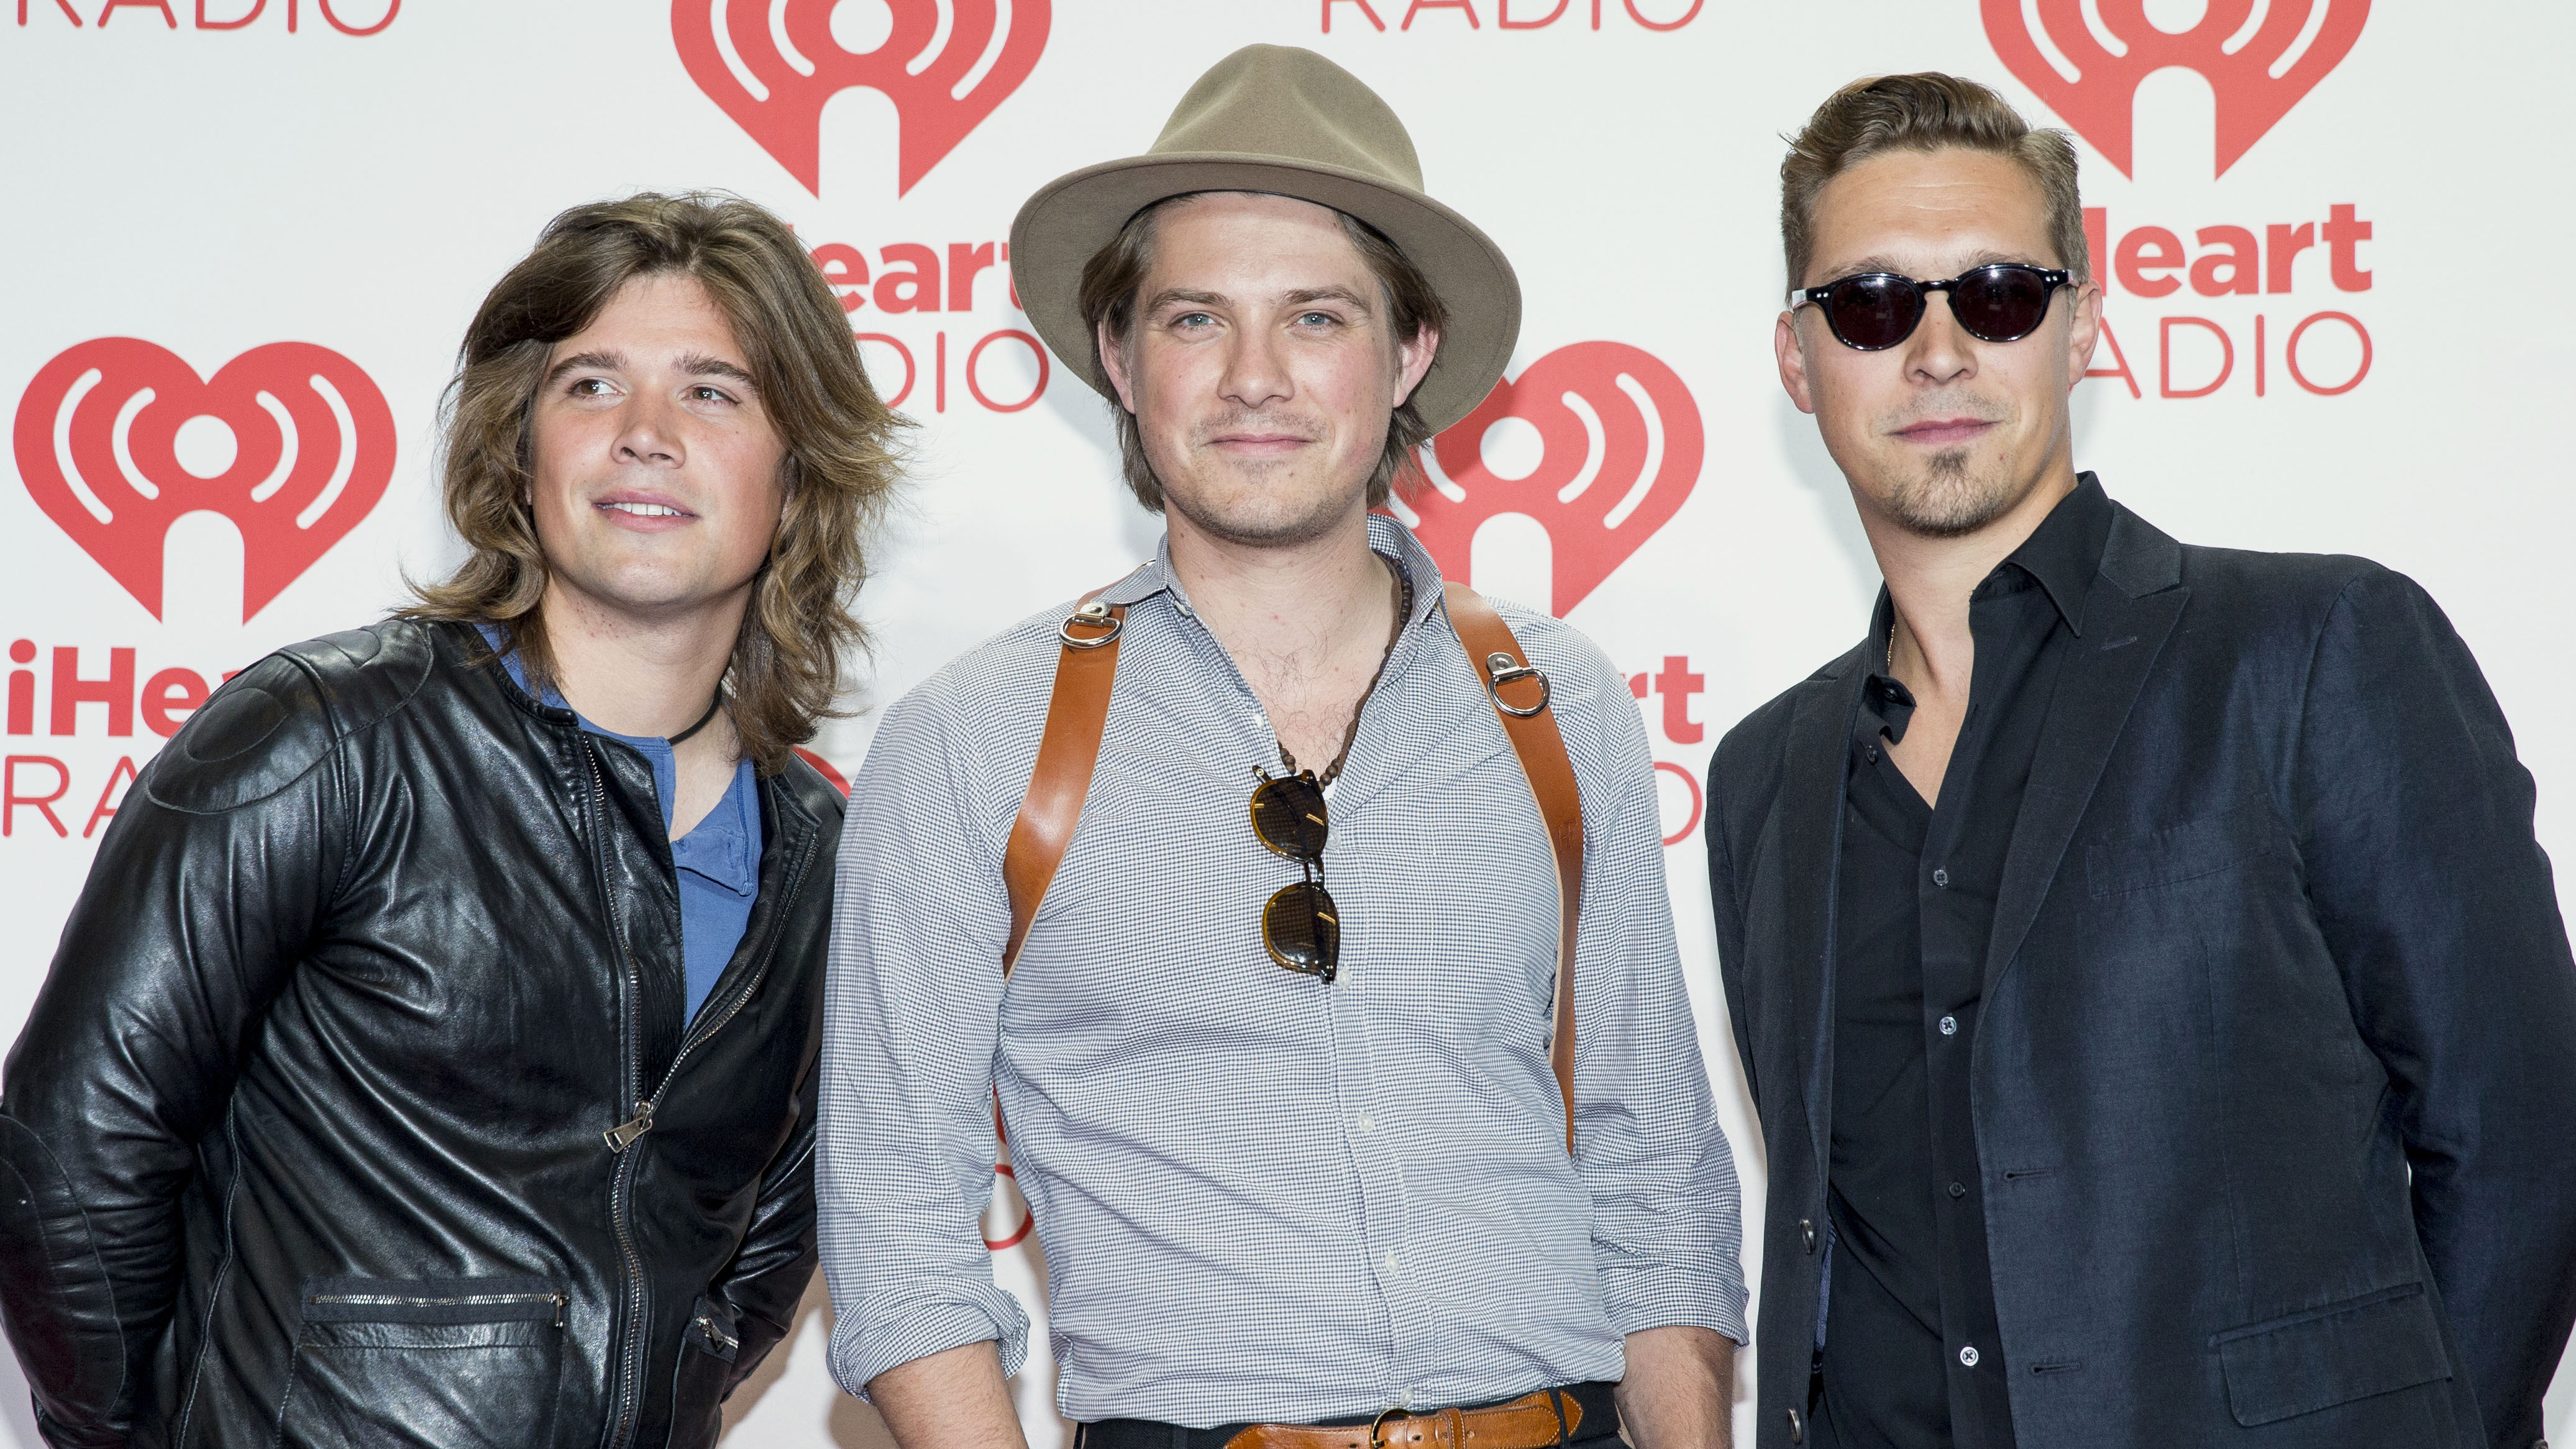 Youngest Hanson brother Zac injured in motorcycle crash